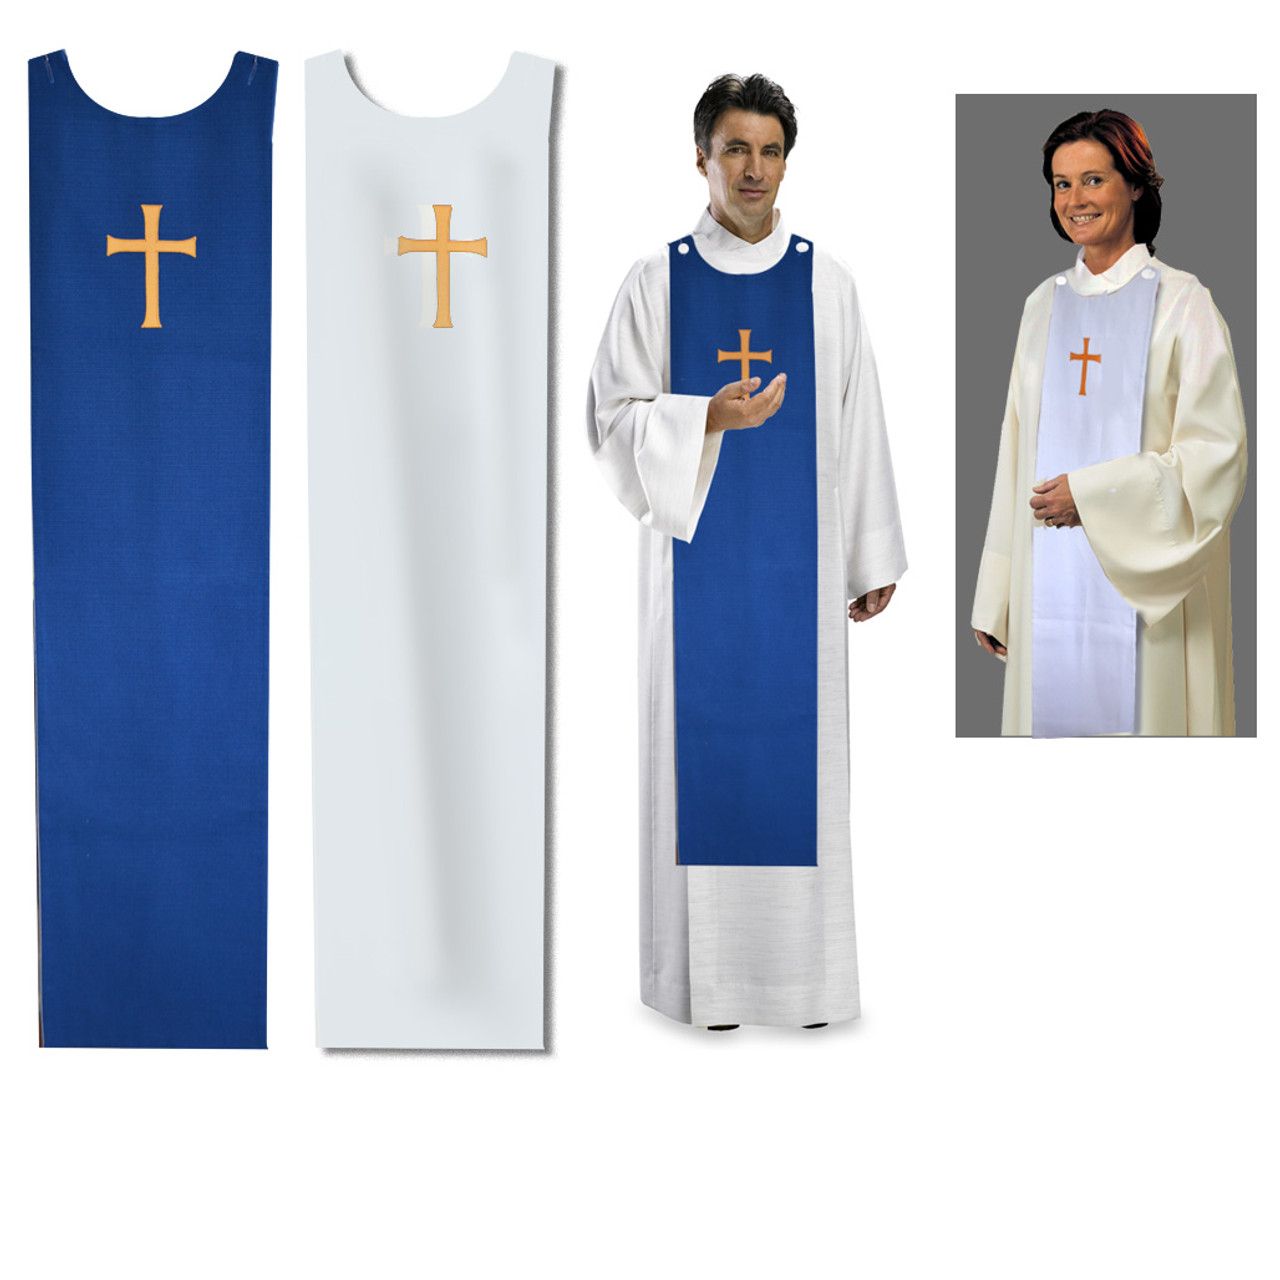 Reversible Blue/White Choir Stoles with Gold Cross